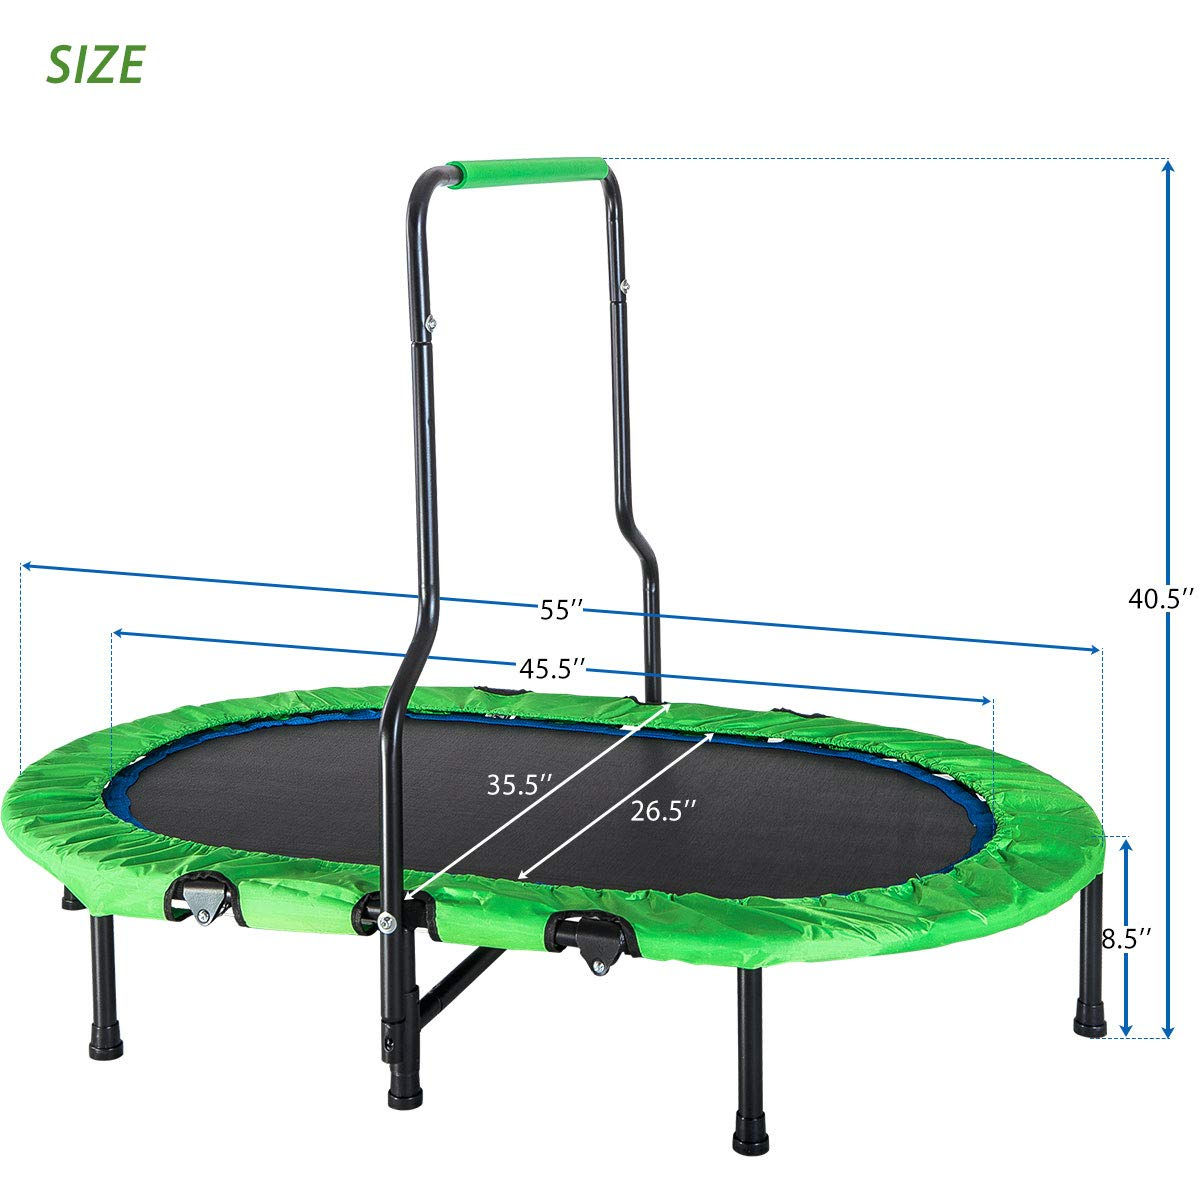 Merax Mini Rebounder Trampoline with Handle for Two Kids, Parent-Child Trampoline (Green) by Merax (Image #7)